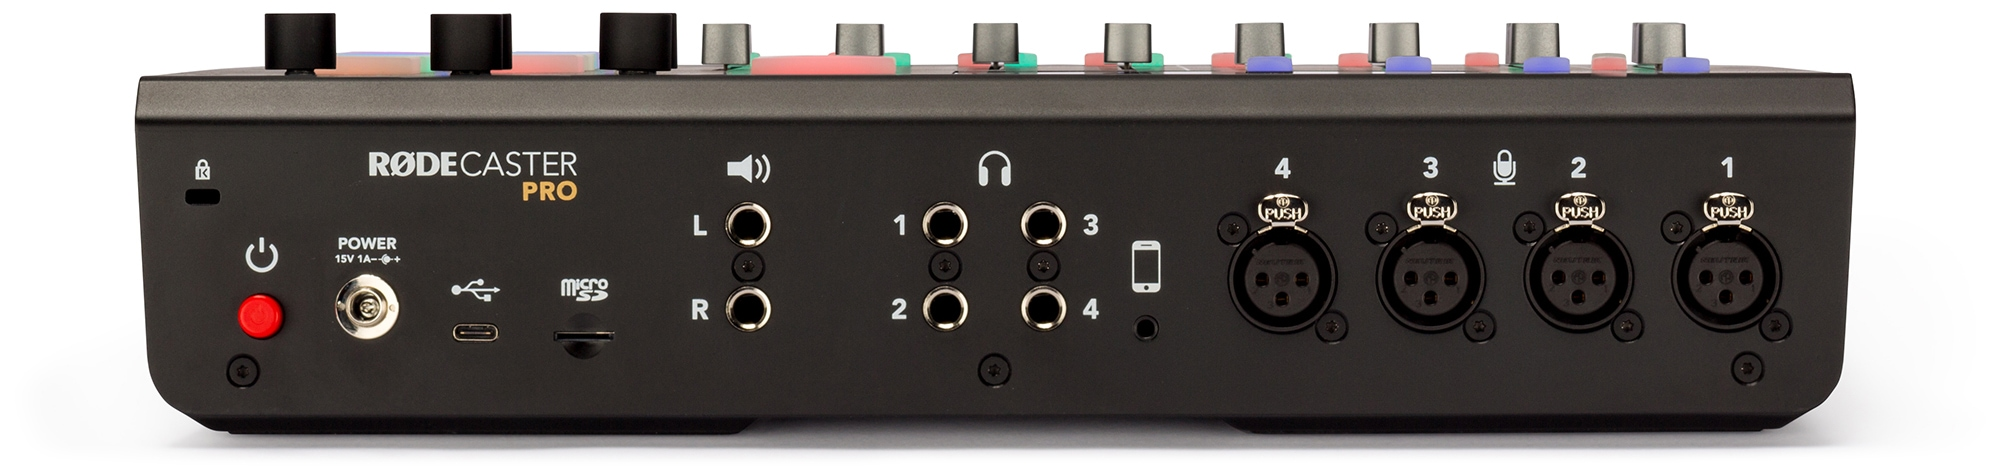 The RødeCaster Pro audio interface offers plenty of inputs and outputs.